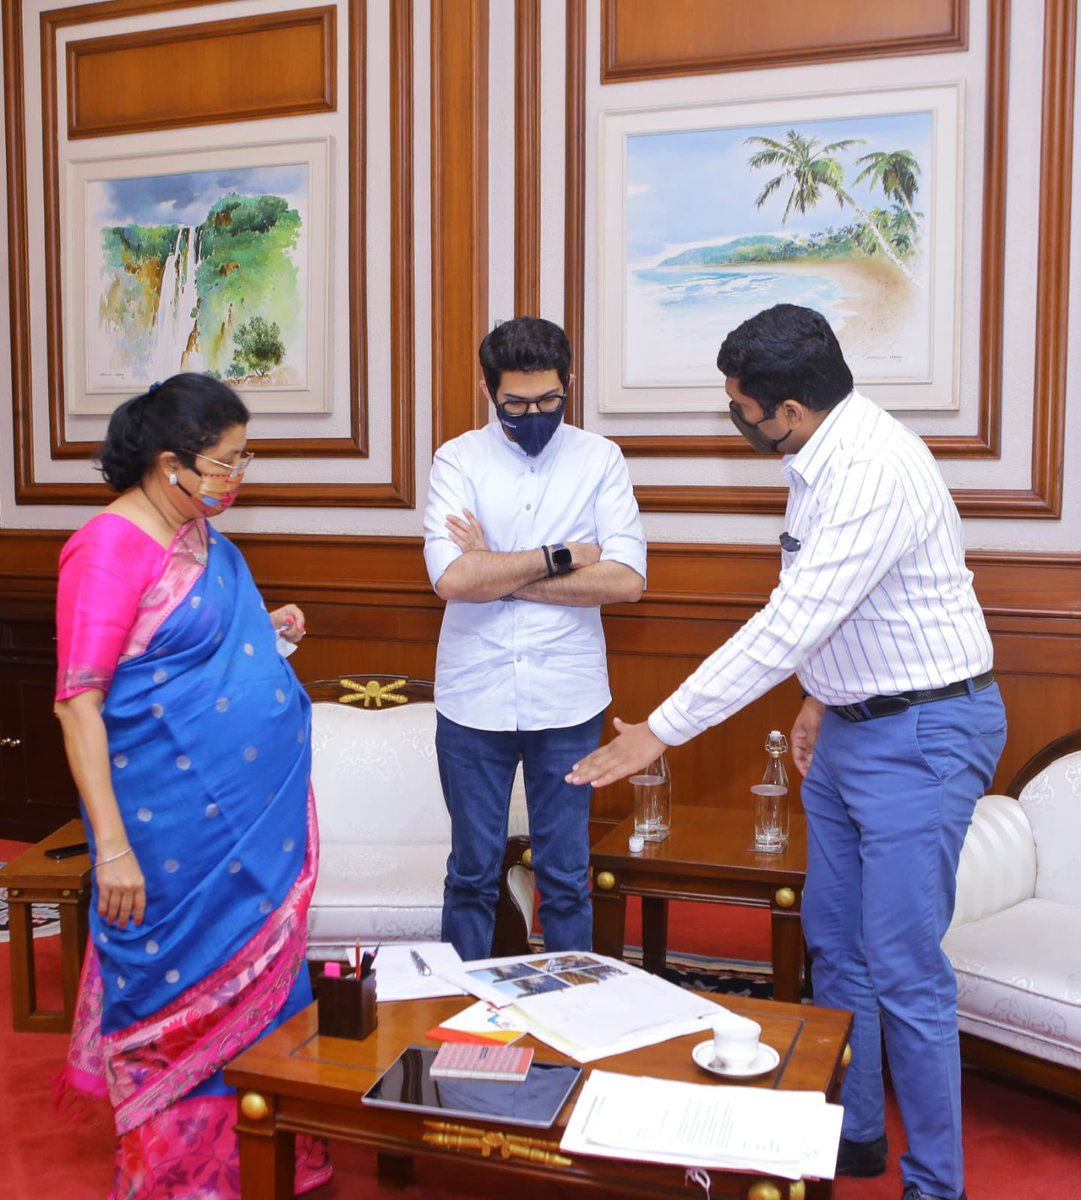 Leader of the House in @mybmc Vishakha Raut ji and Assistant Commissioner of @mybmcWardGN discussed with me the multiple projects in G/N like Mahim Beach, Mahim causeway, pedestrian pathways and missing links.